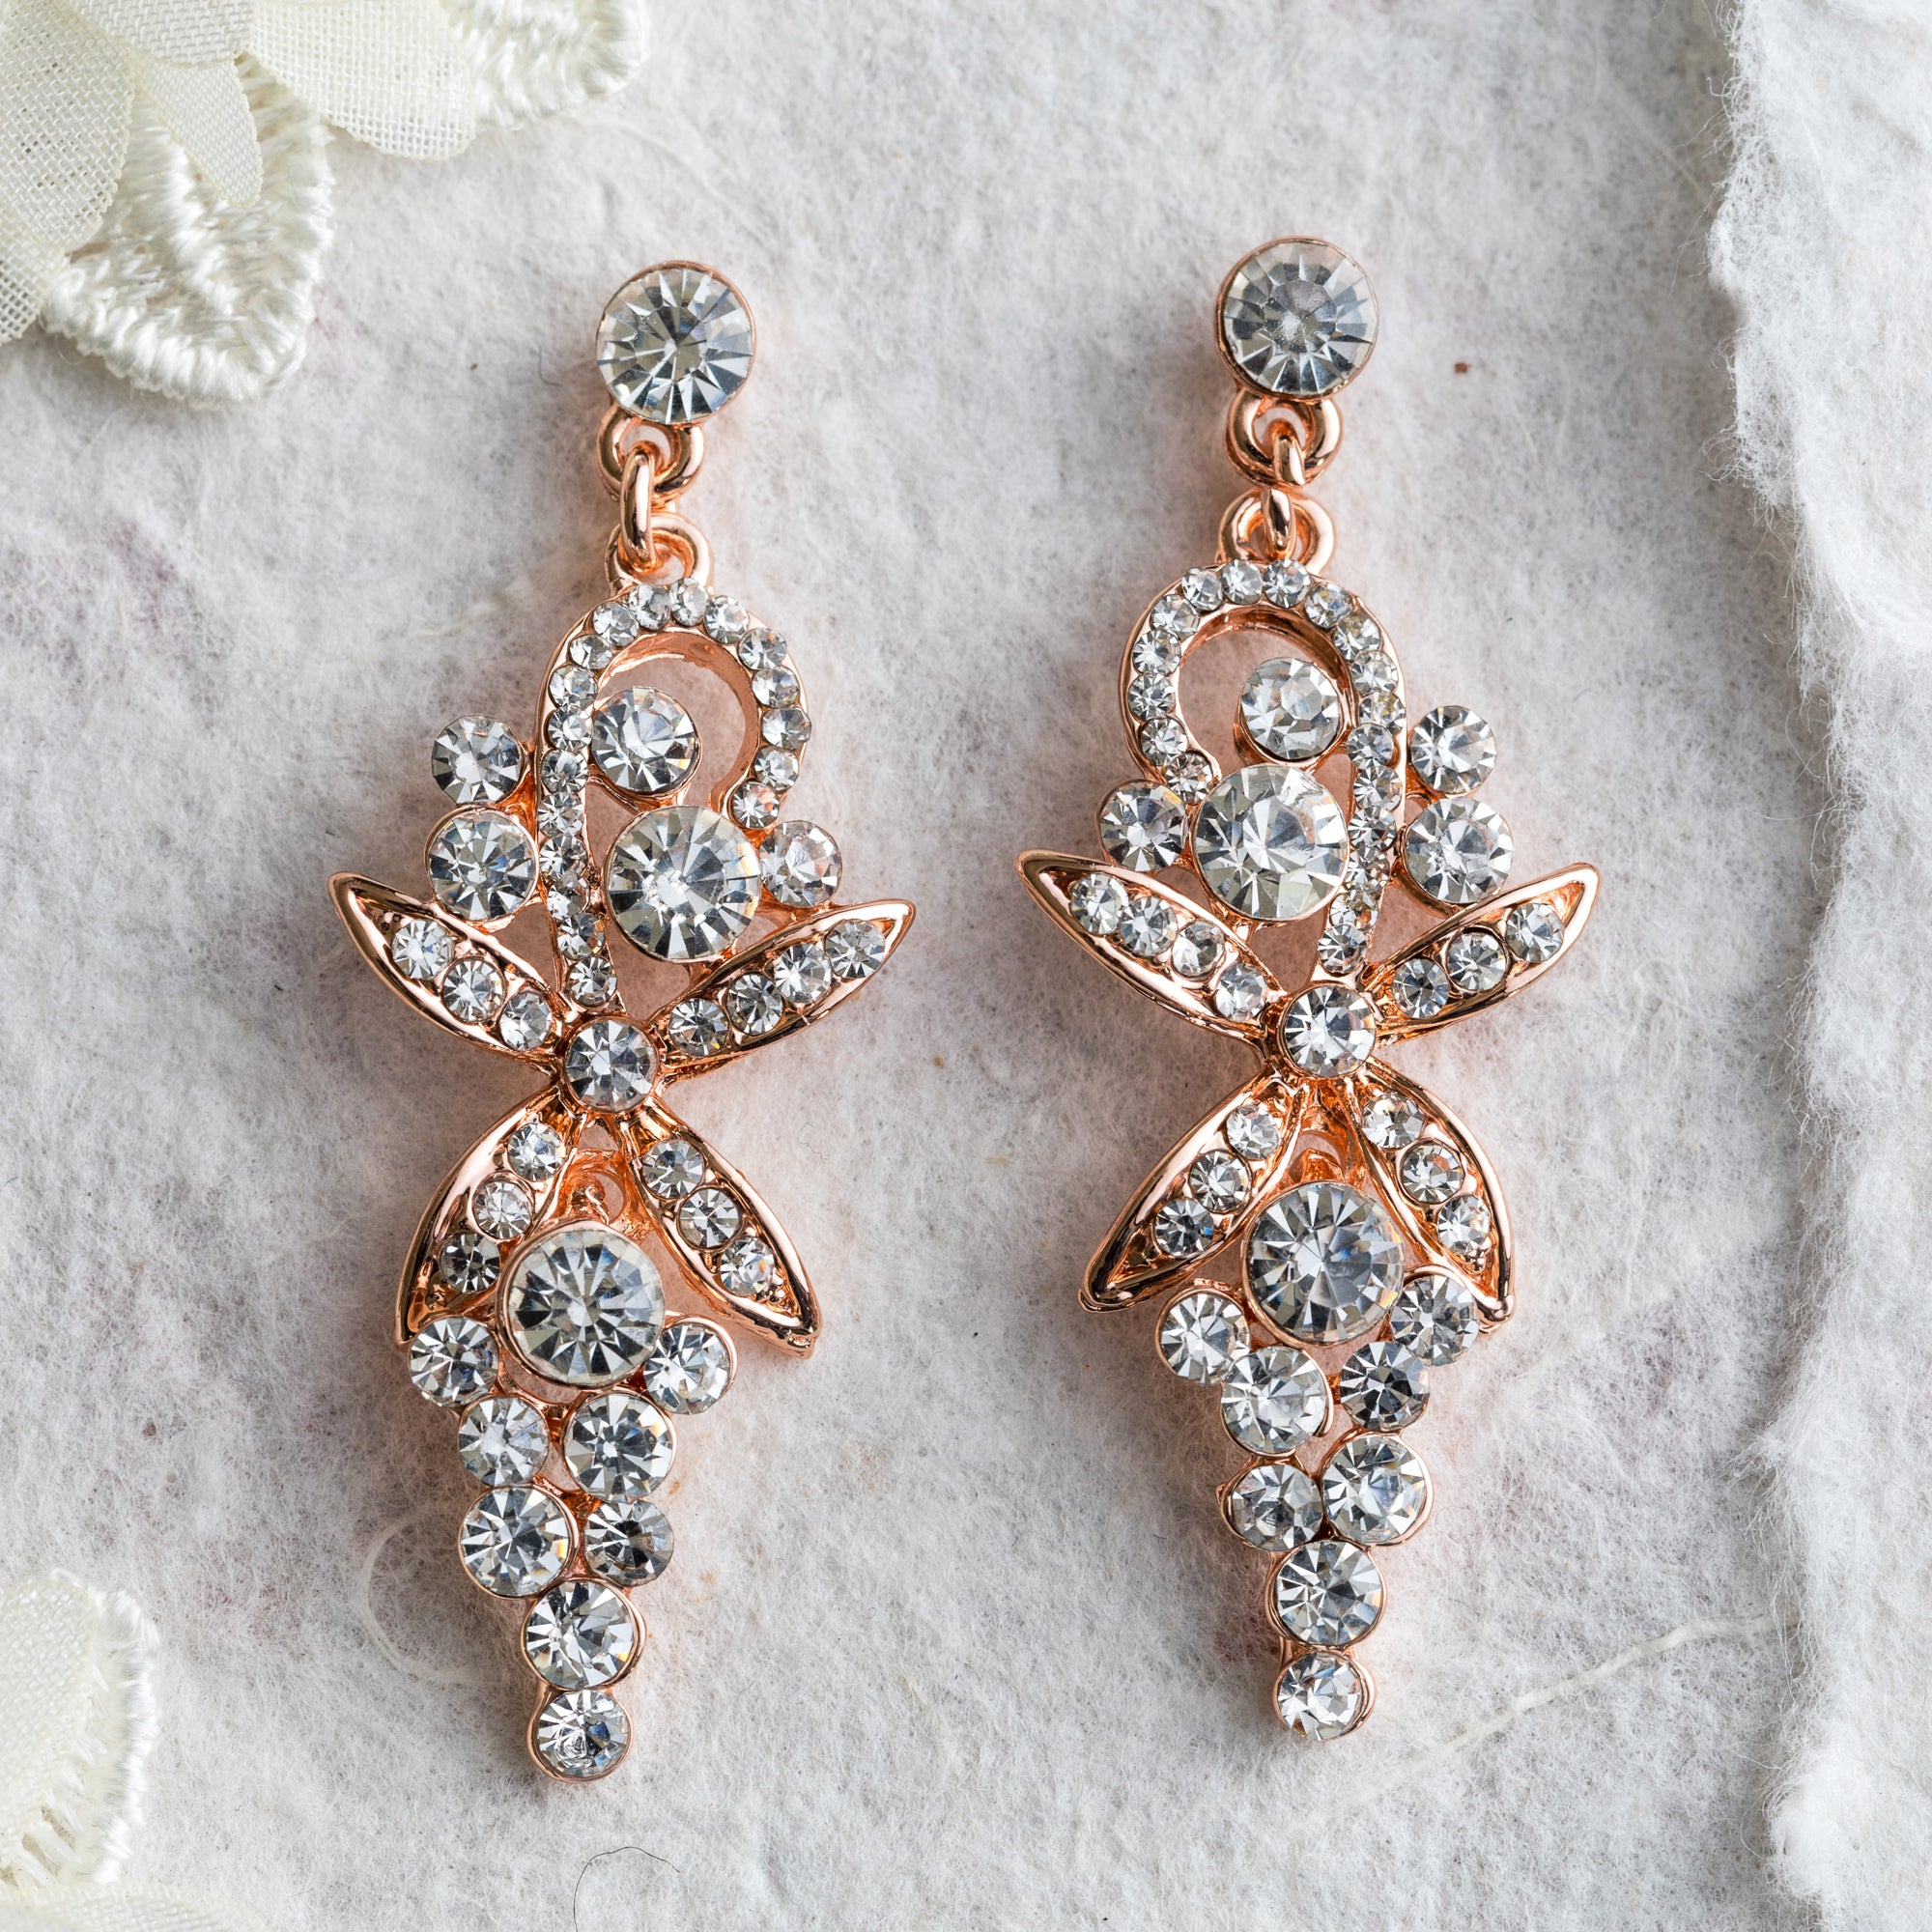 Elle crystal and rose gold earrings